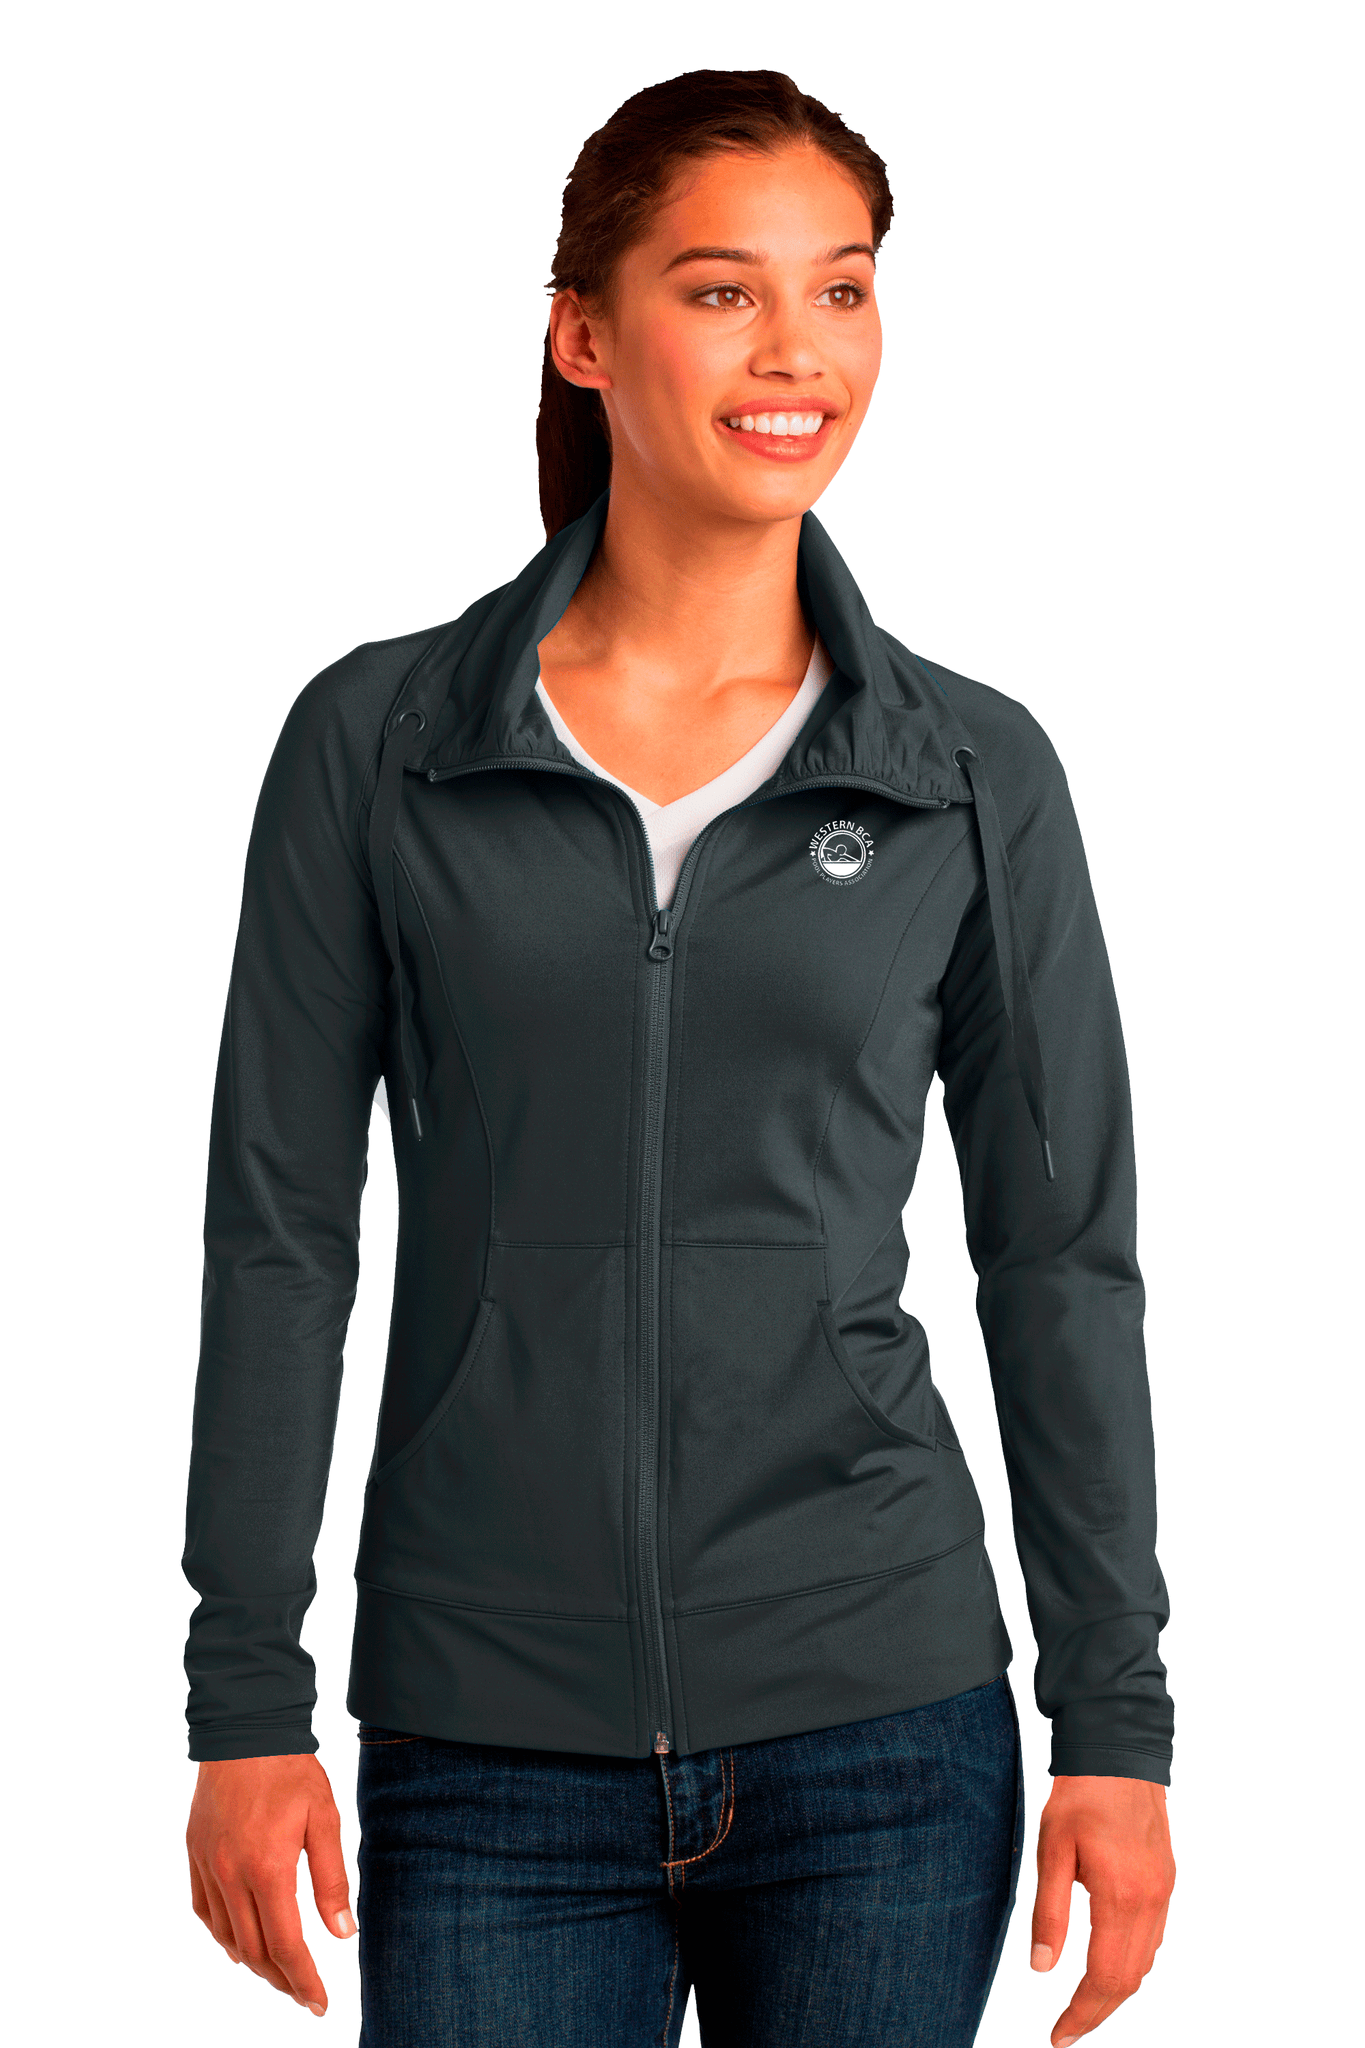 WBCA Stretch Full-Zip Jacket